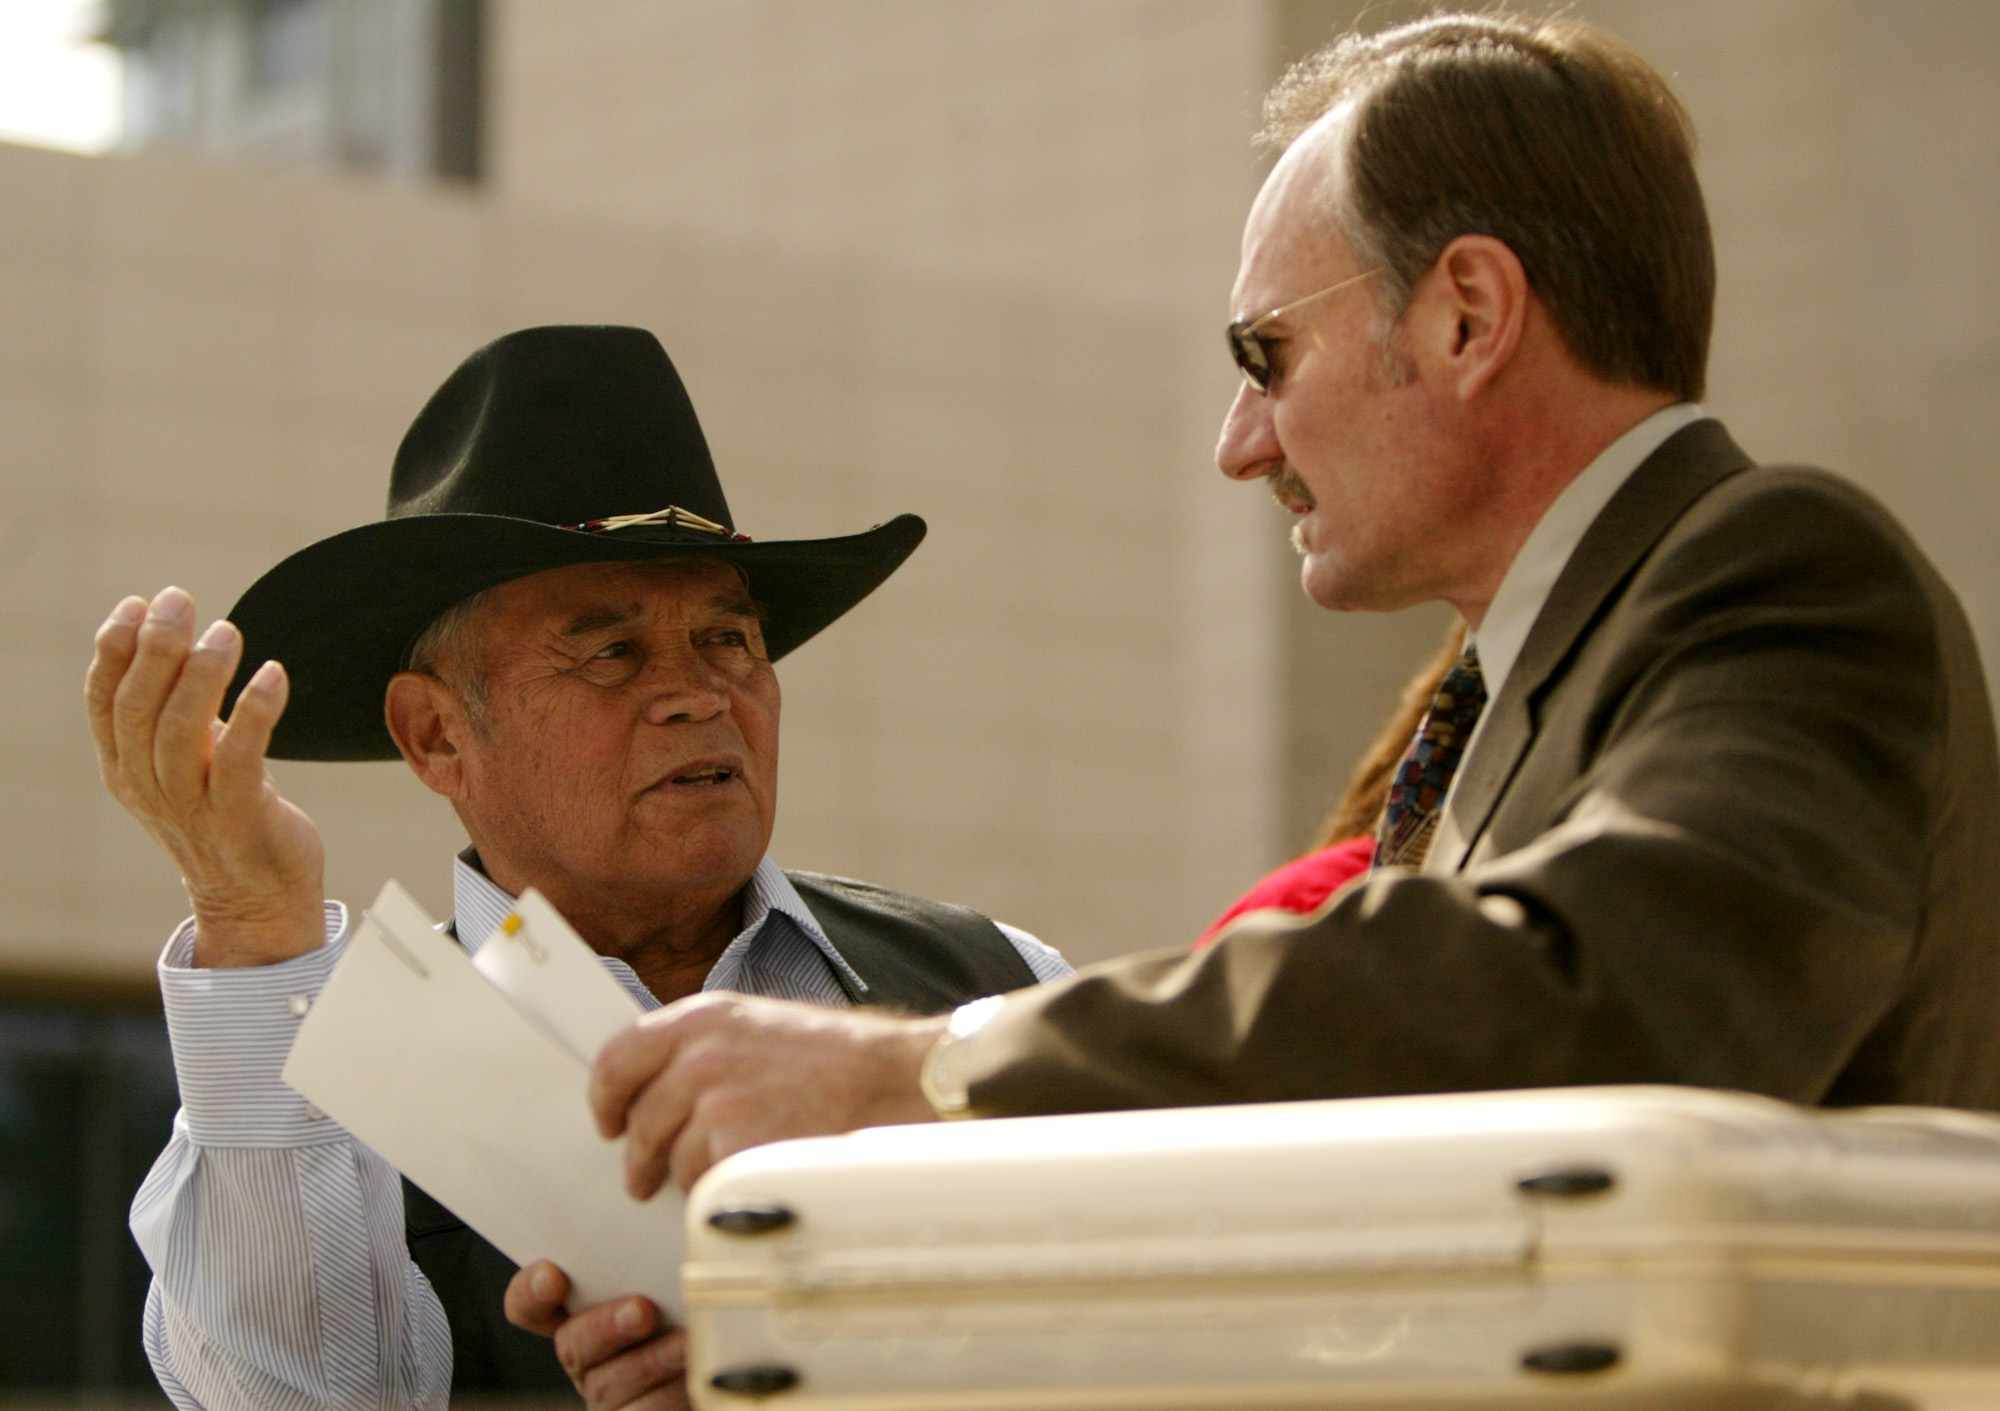 Chief Raymond Yowell of the Western Shoshone Nation, left, confers with tribal attorney Robert Hager, at the U.S. Federal Courhouse in Las Vegas, Friday, March 4, 2005. The tribe filed a lawsuit against the federal government saying a 19th century treaty with the federal government prohibits building a nuclear dump on the Yucca Mountain site that Congress and the Bush administration picked for the repository. (AP Photo/Joe Cavaretta)